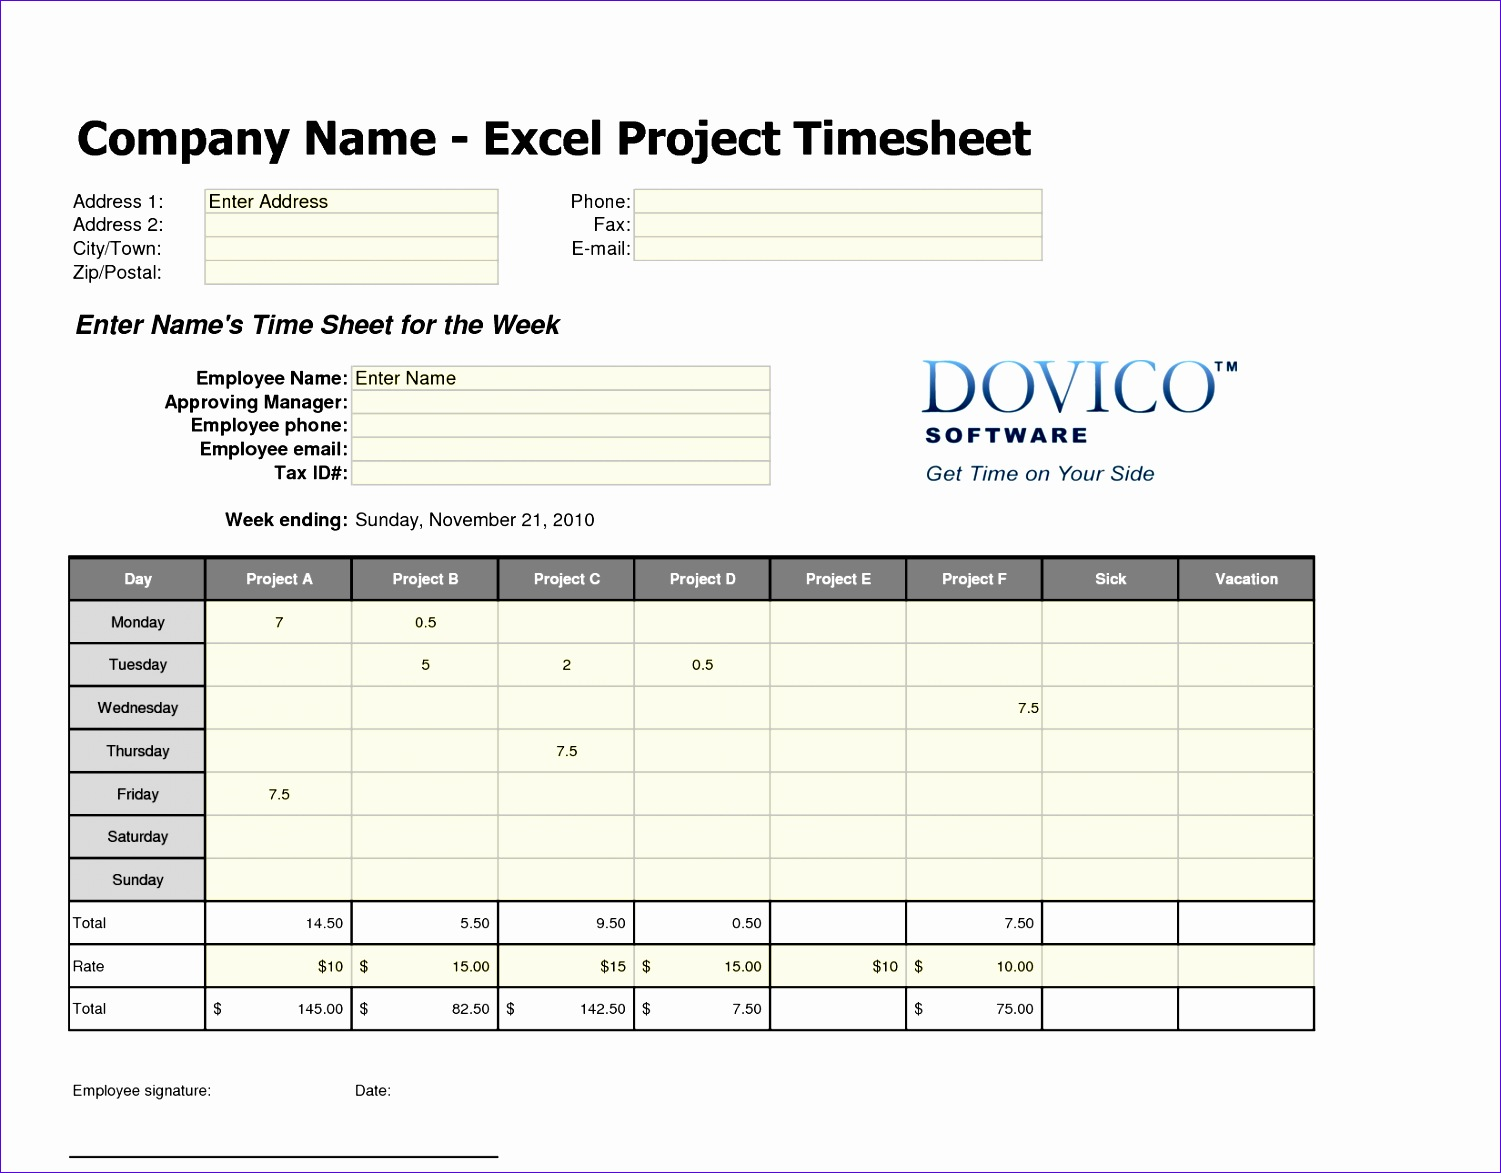 Excel Weekly Timesheet Template with formulas Ikbyz Lovely Free Weekly Timesheet Template Excel